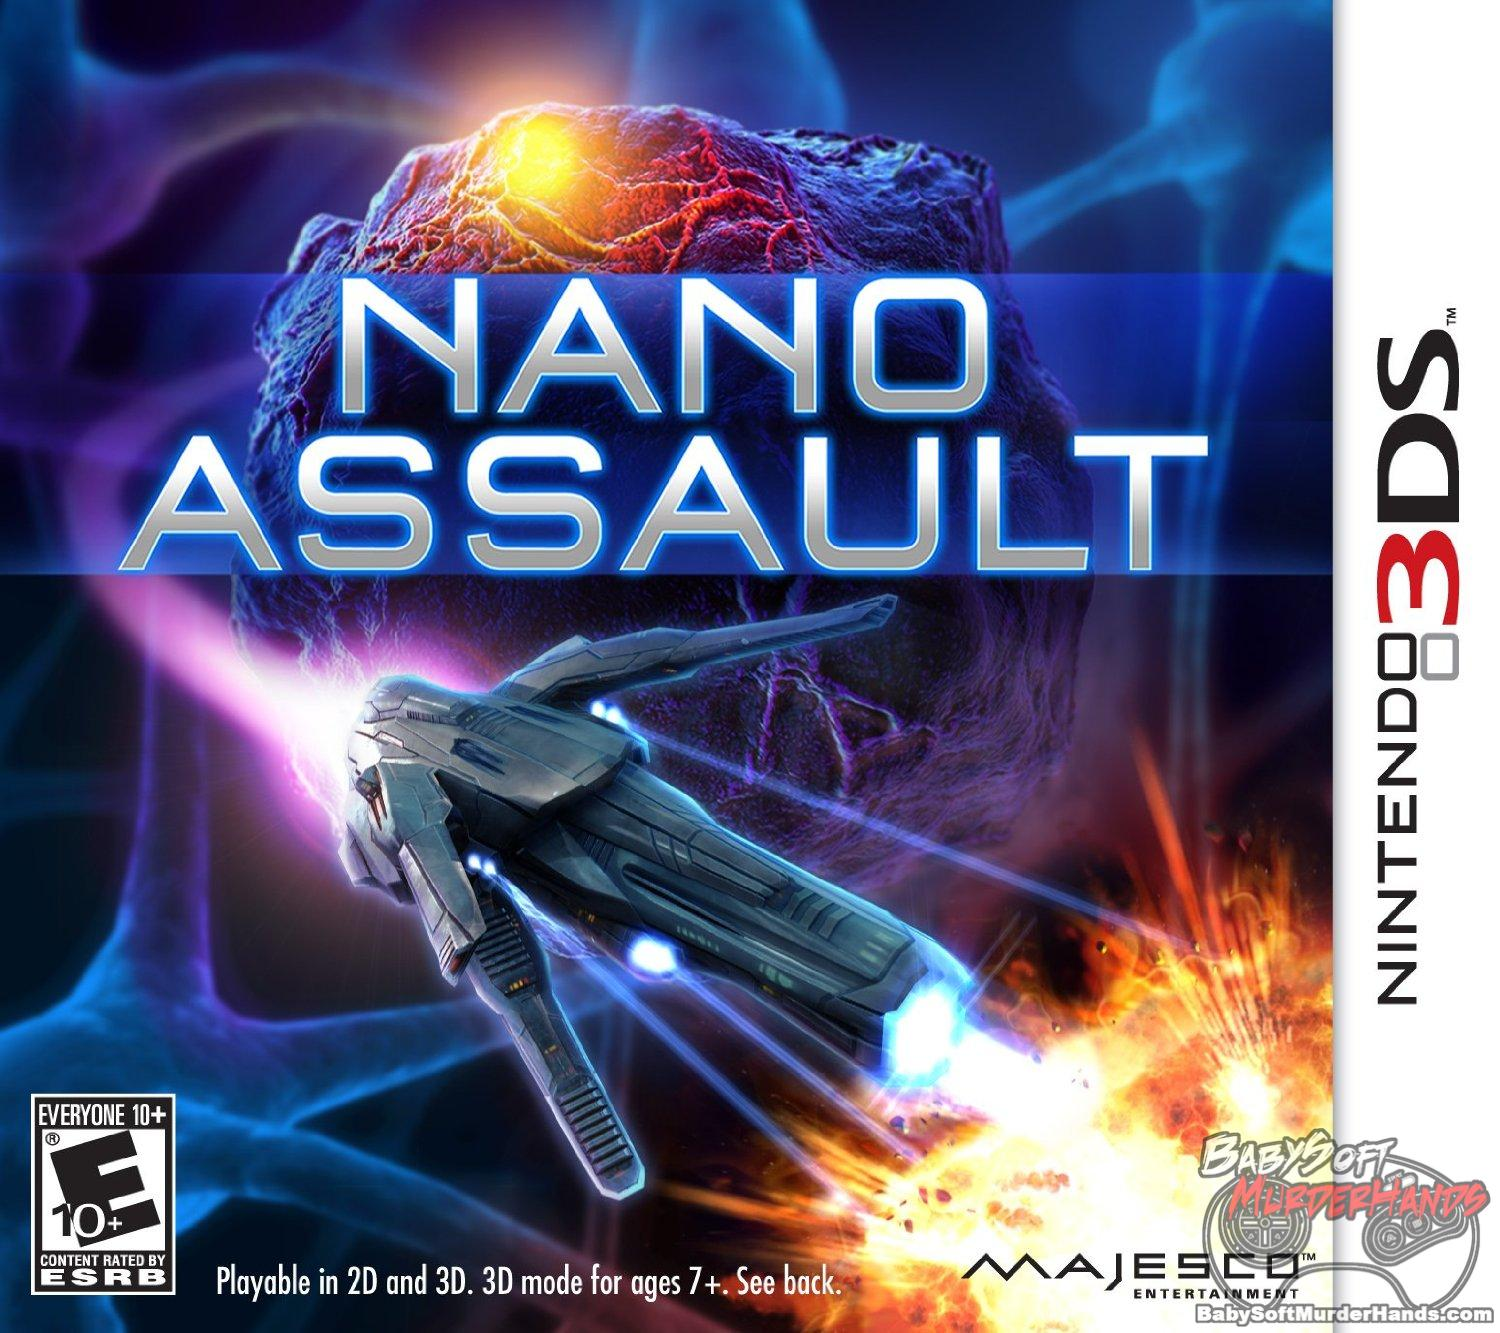 Nano Assault - Nintendo 3DS cheap 3ds games